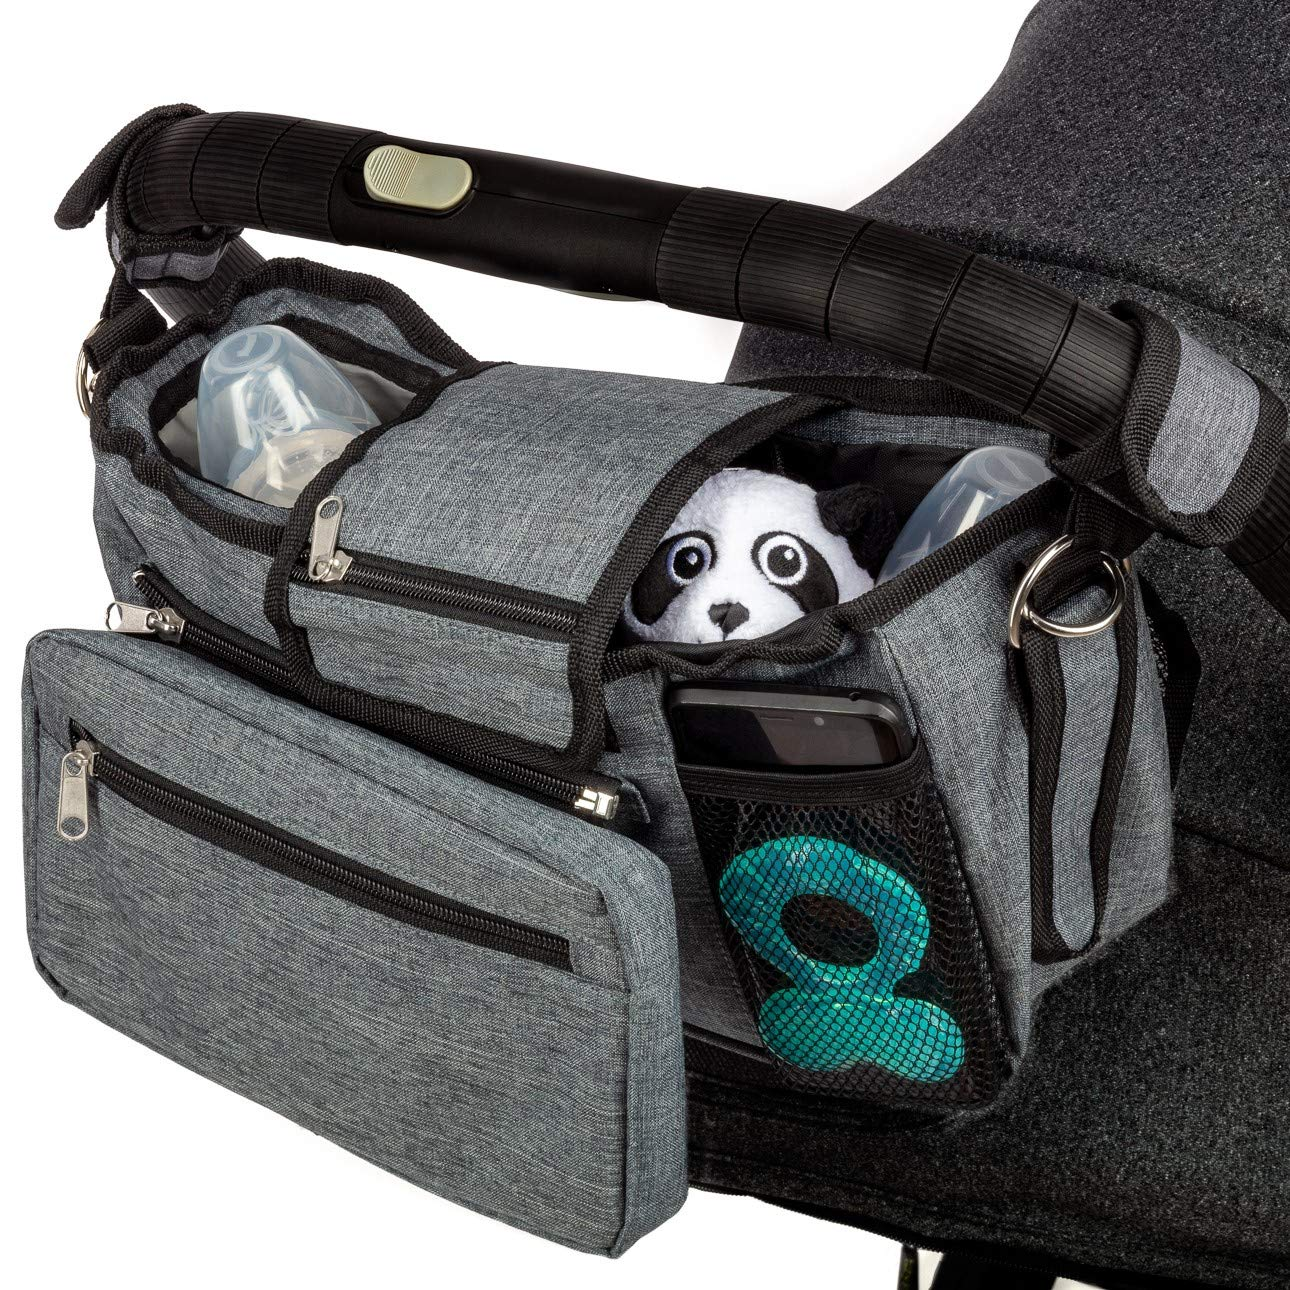 Deluxe Non Slip Baby Stroller Organizer Bag with Insulated Cup Holders, Versatile Stroller Accessory converting into Shoulder Bag, Universal Fit Including Uppababy Vista, BOB, Nuna, Baby Jogger